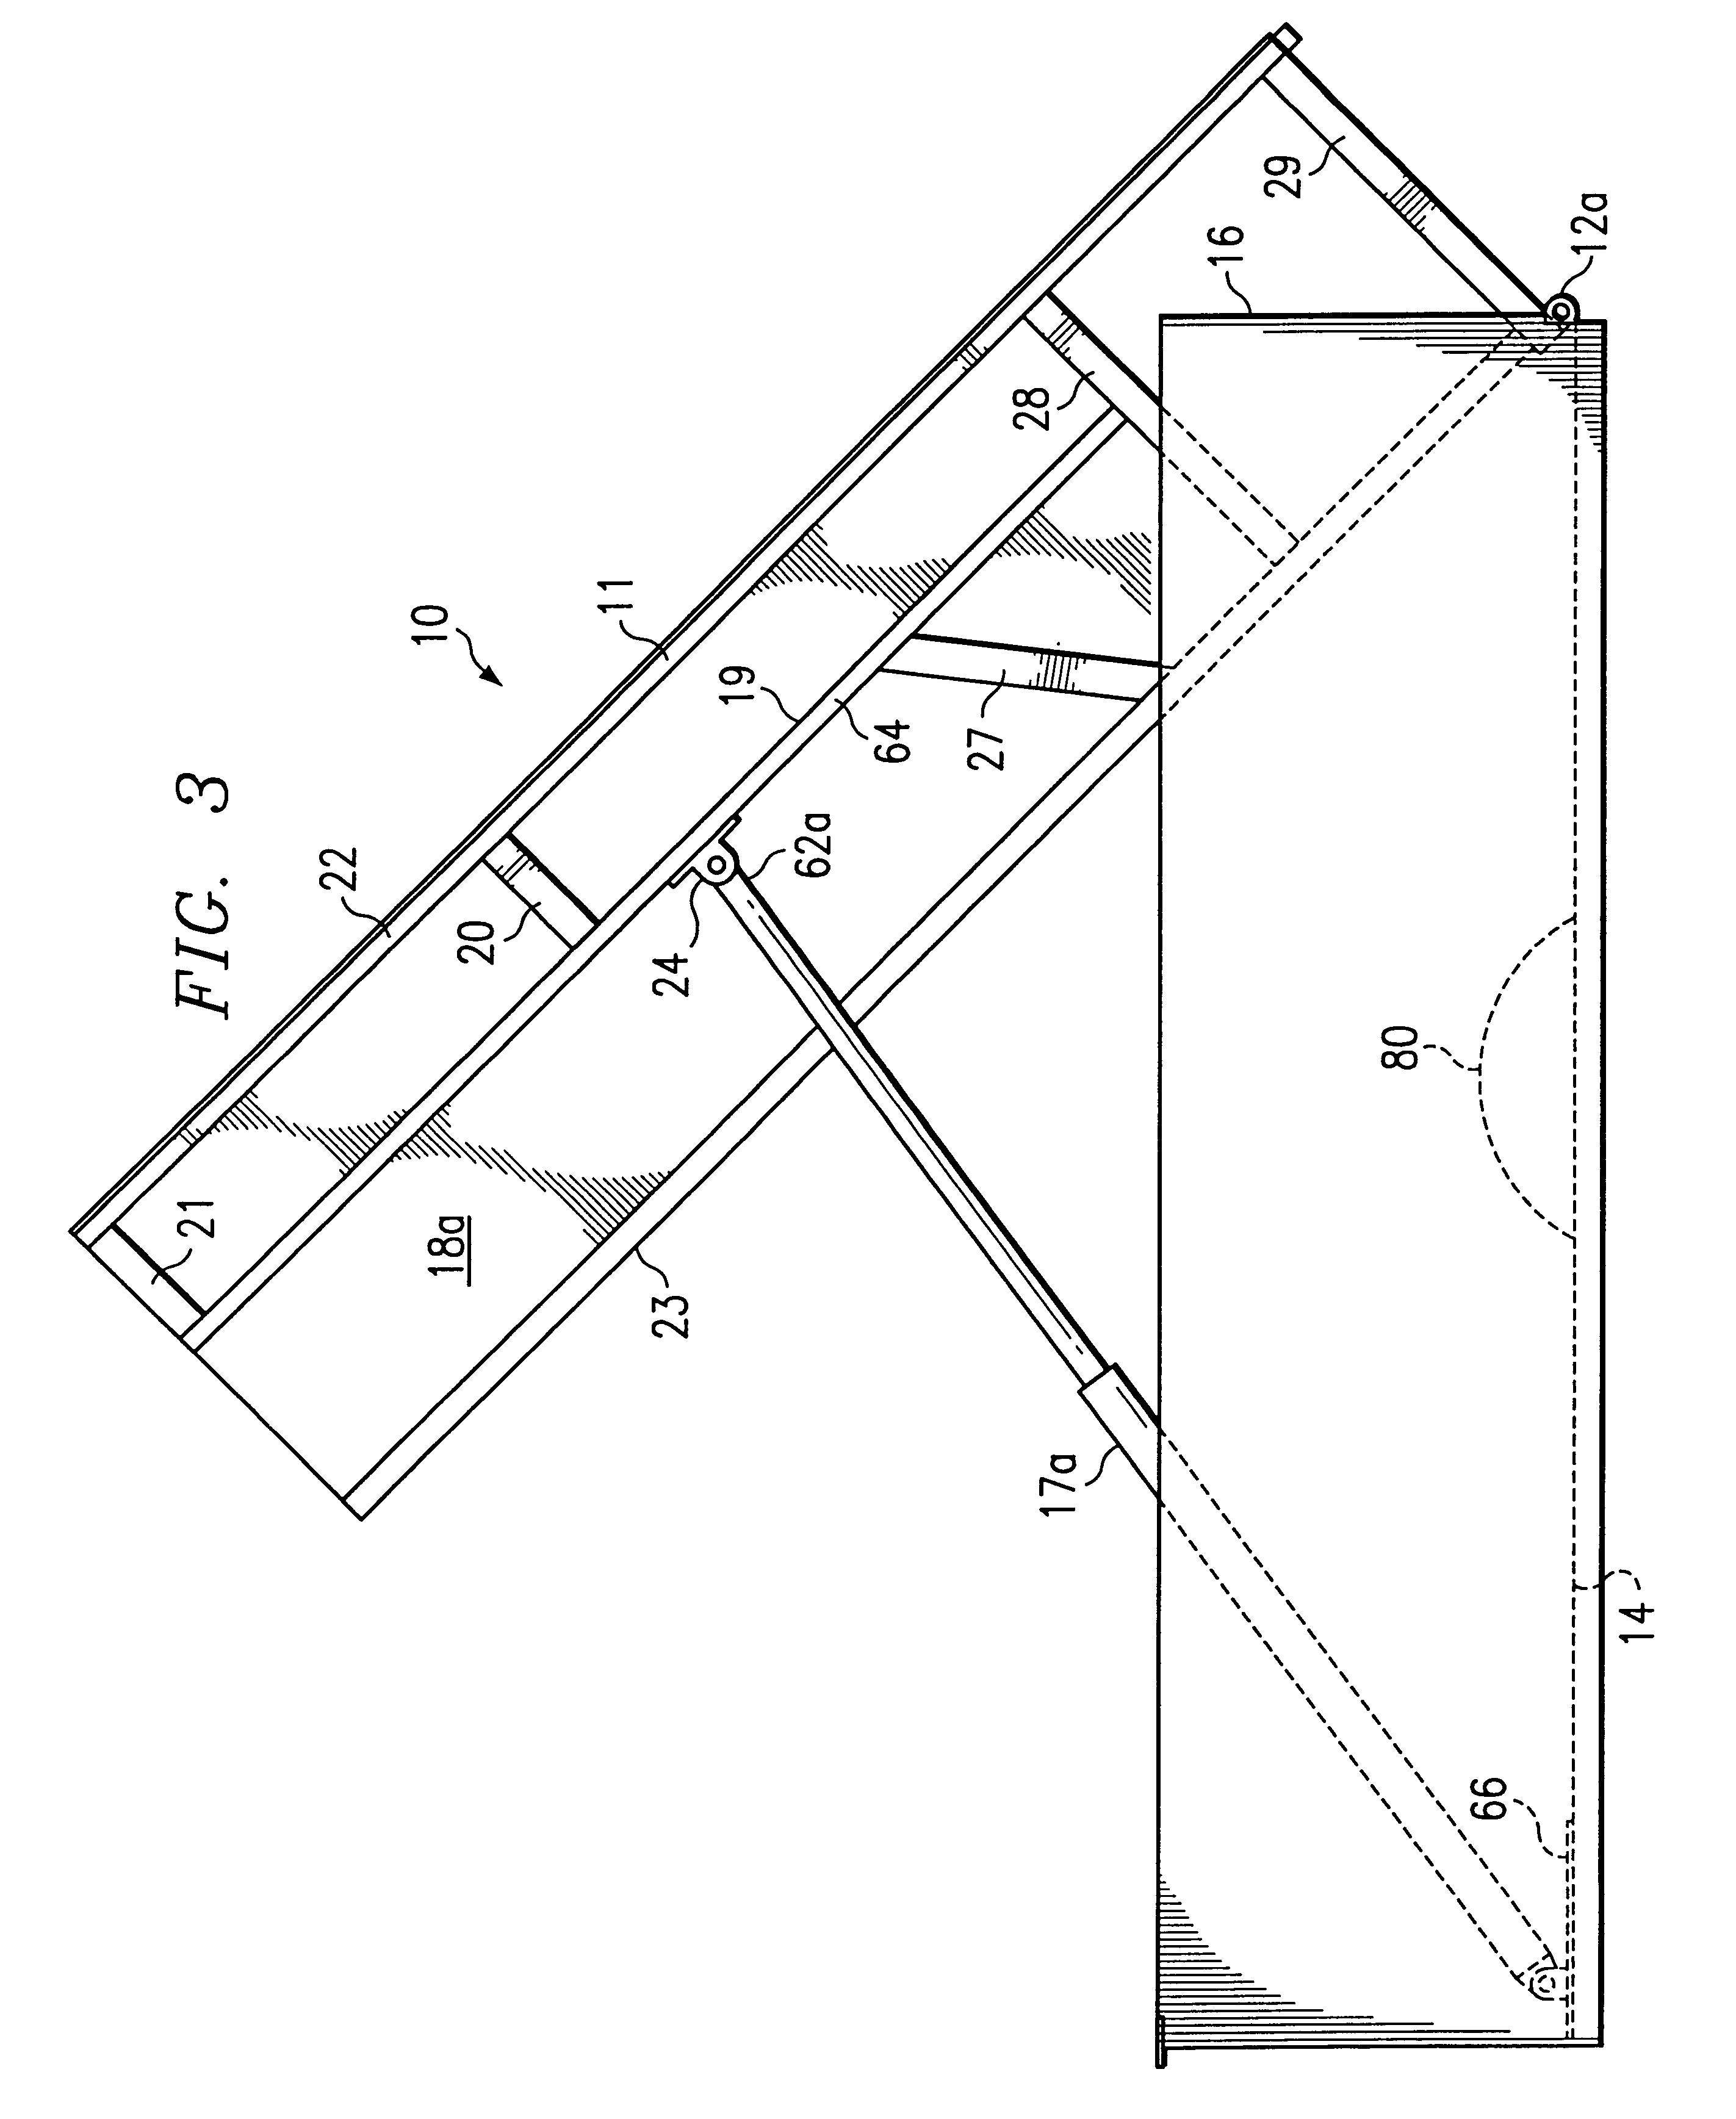 patent us6196634 - dumping bed liner for pickup truck - google patents